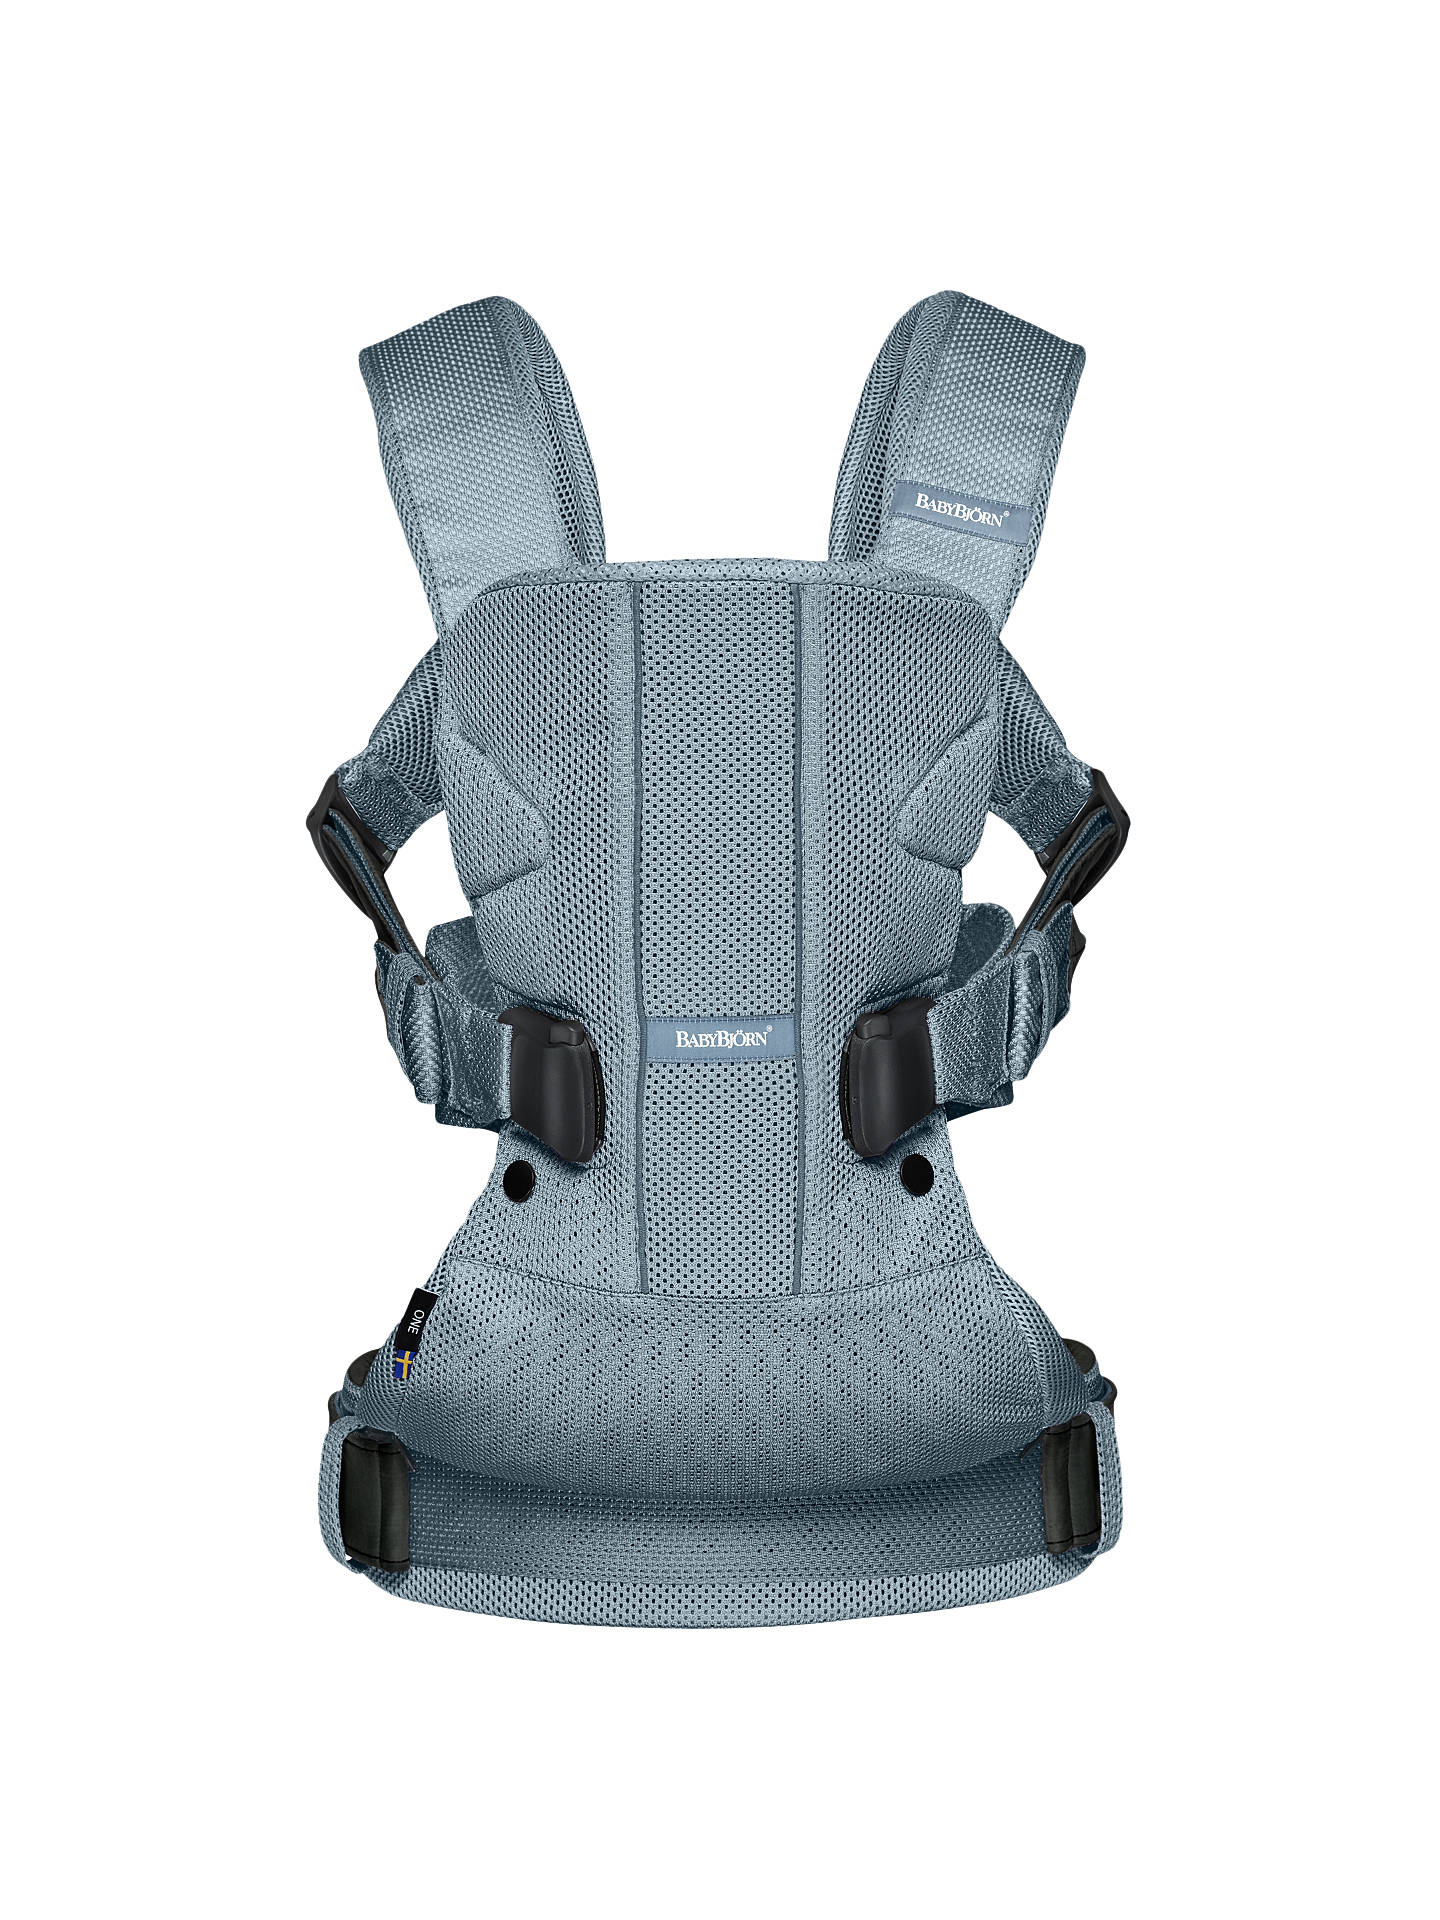 7ce2011ca60 BabyBjörn One Air Baby Carrier at John Lewis   Partners